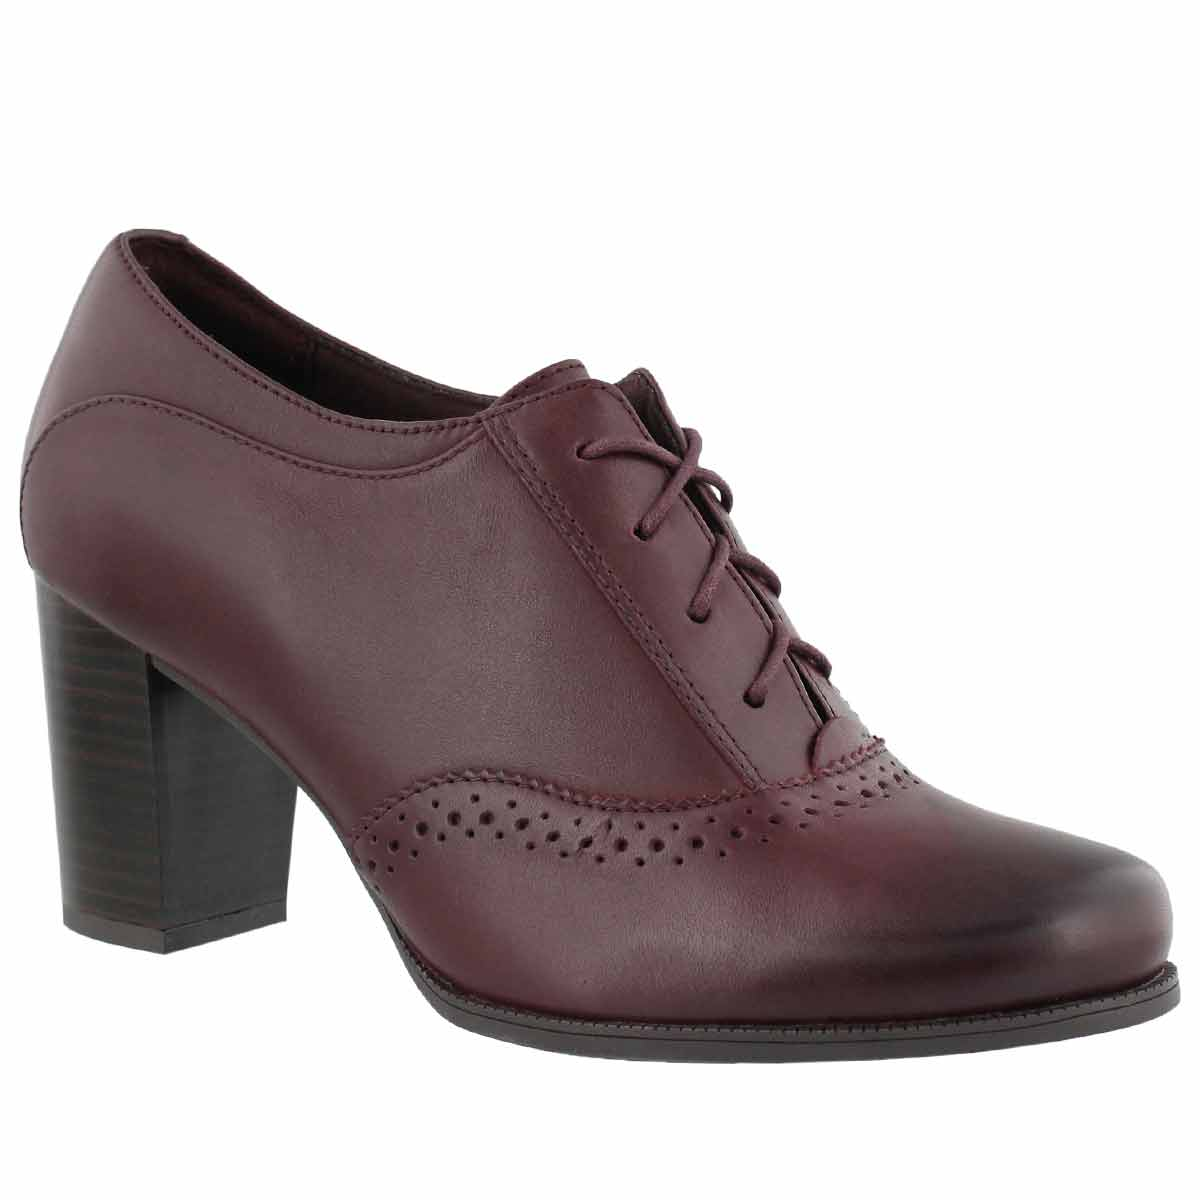 Women's CLAESON PEARL burgundy dress heels